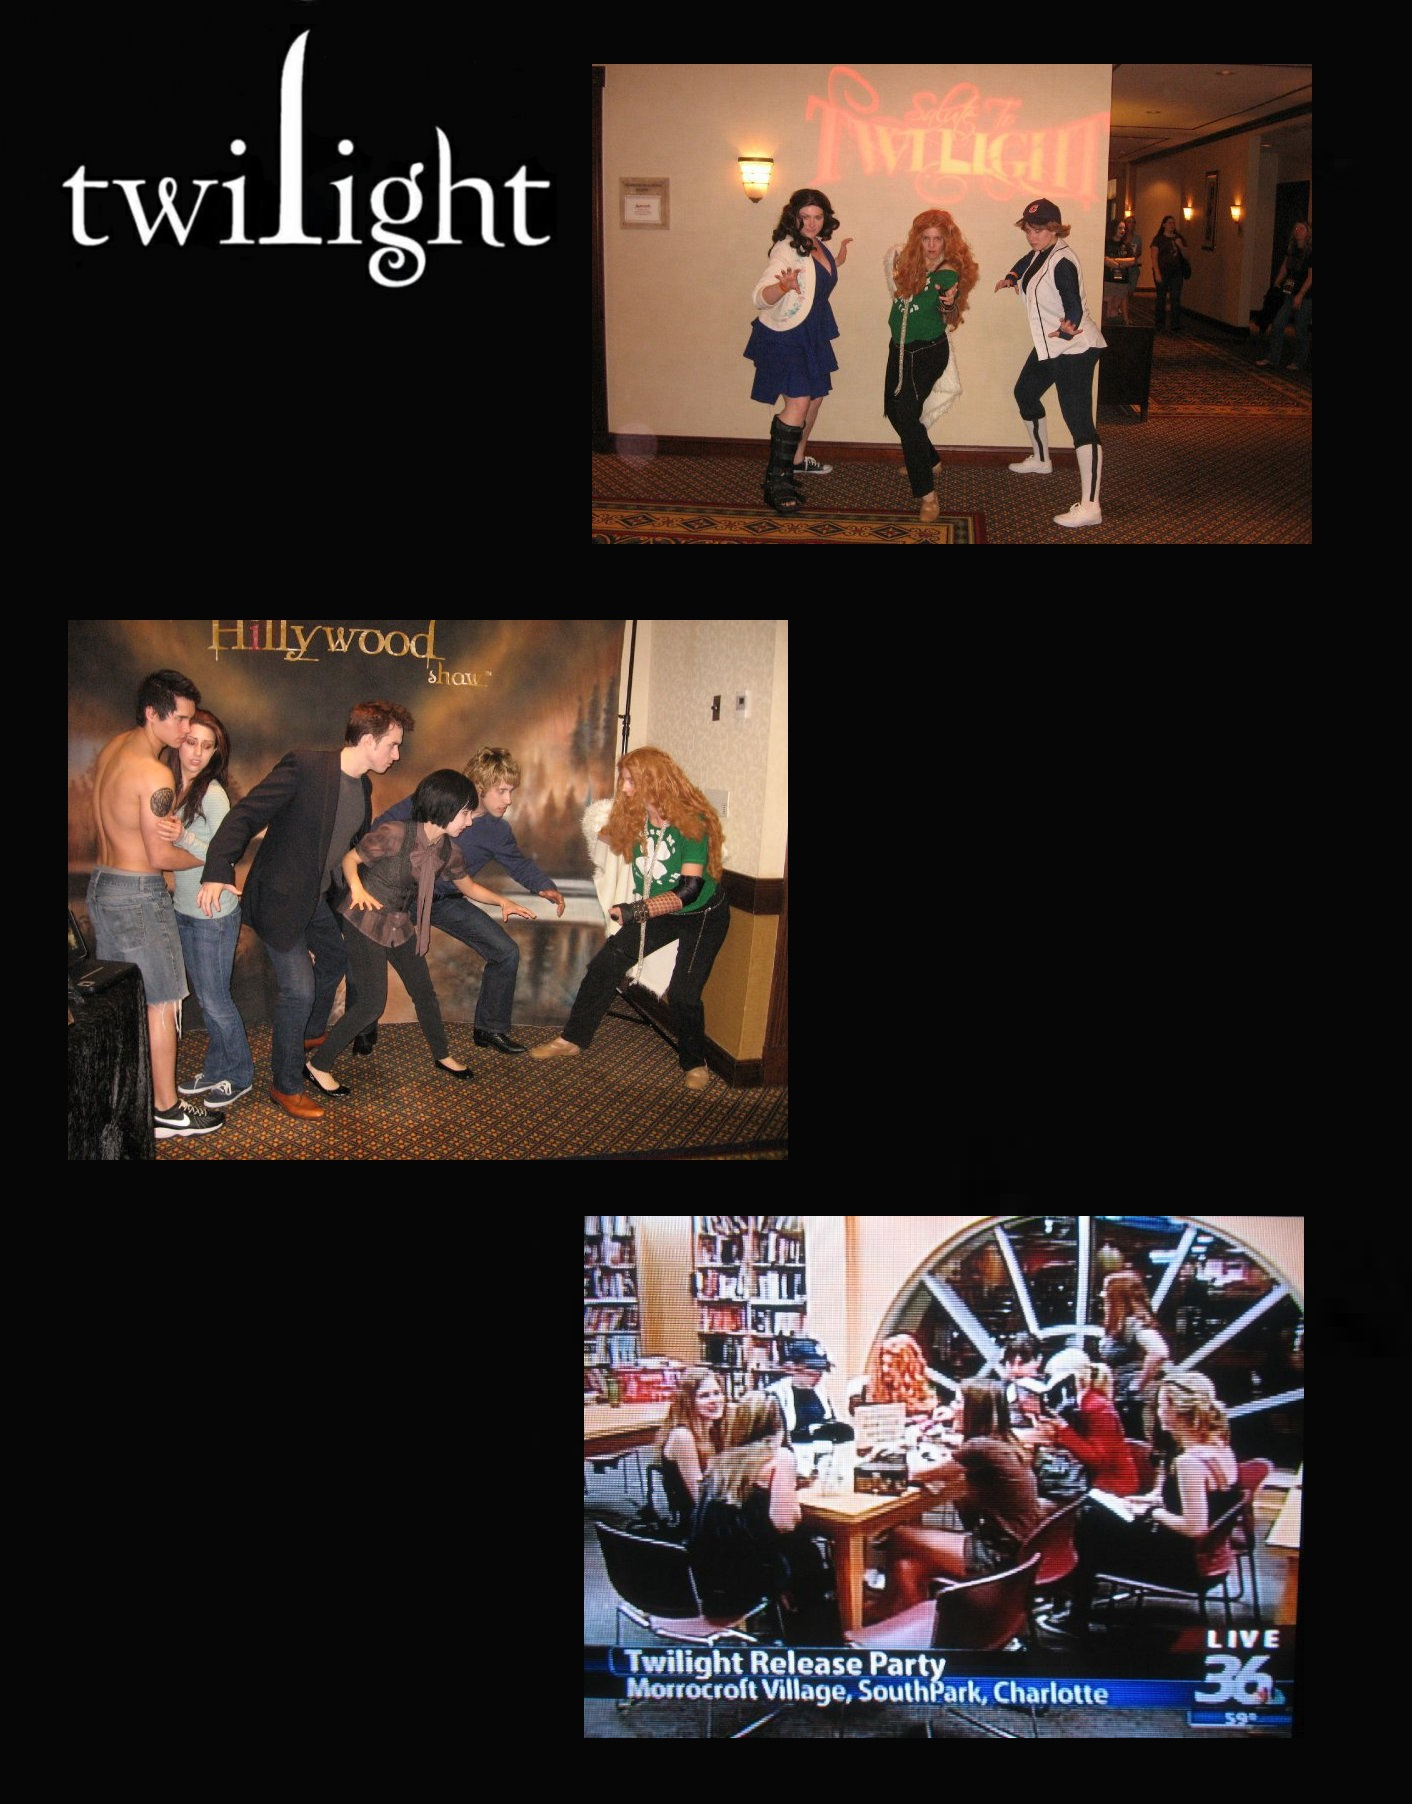 Twilight Creation Con/New Moon DVD release party